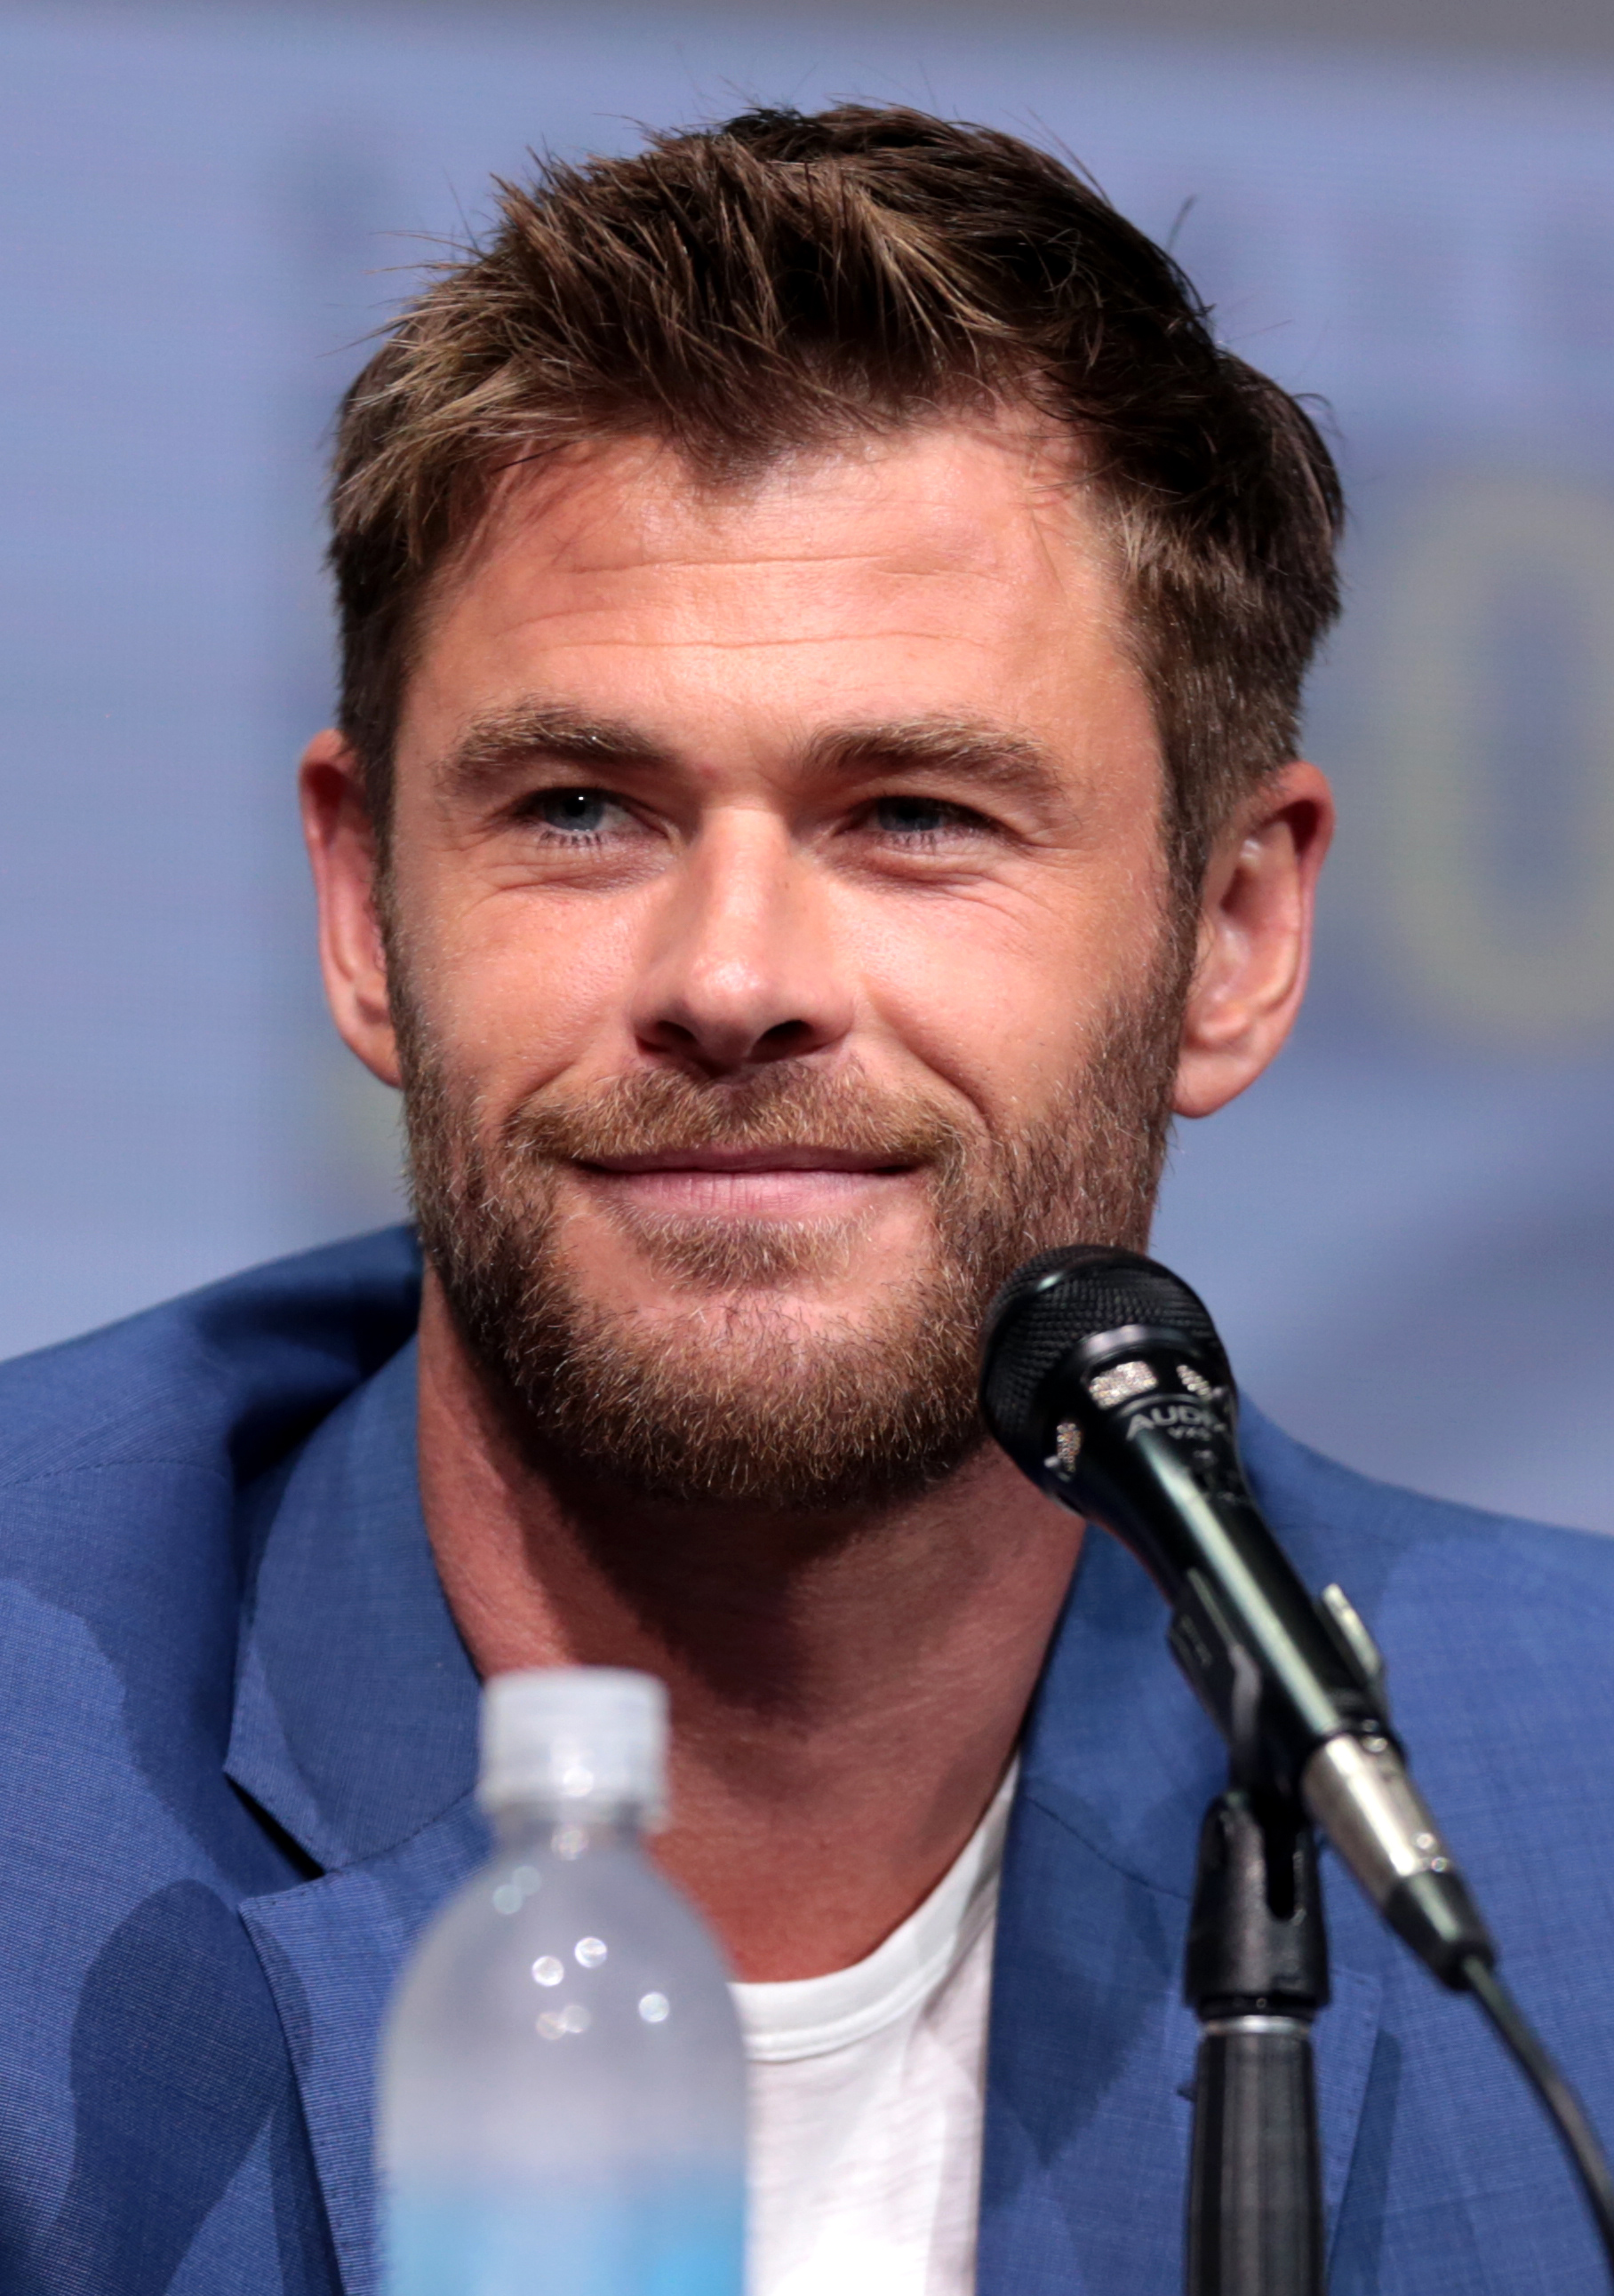 The 35-year old son of father Craig Hemsworth and mother Leonie Hemsworth Chris Hemsworth in 2018 photo. Chris Hemsworth earned a 5.8 million dollar salary - leaving the net worth at 50 million in 2018